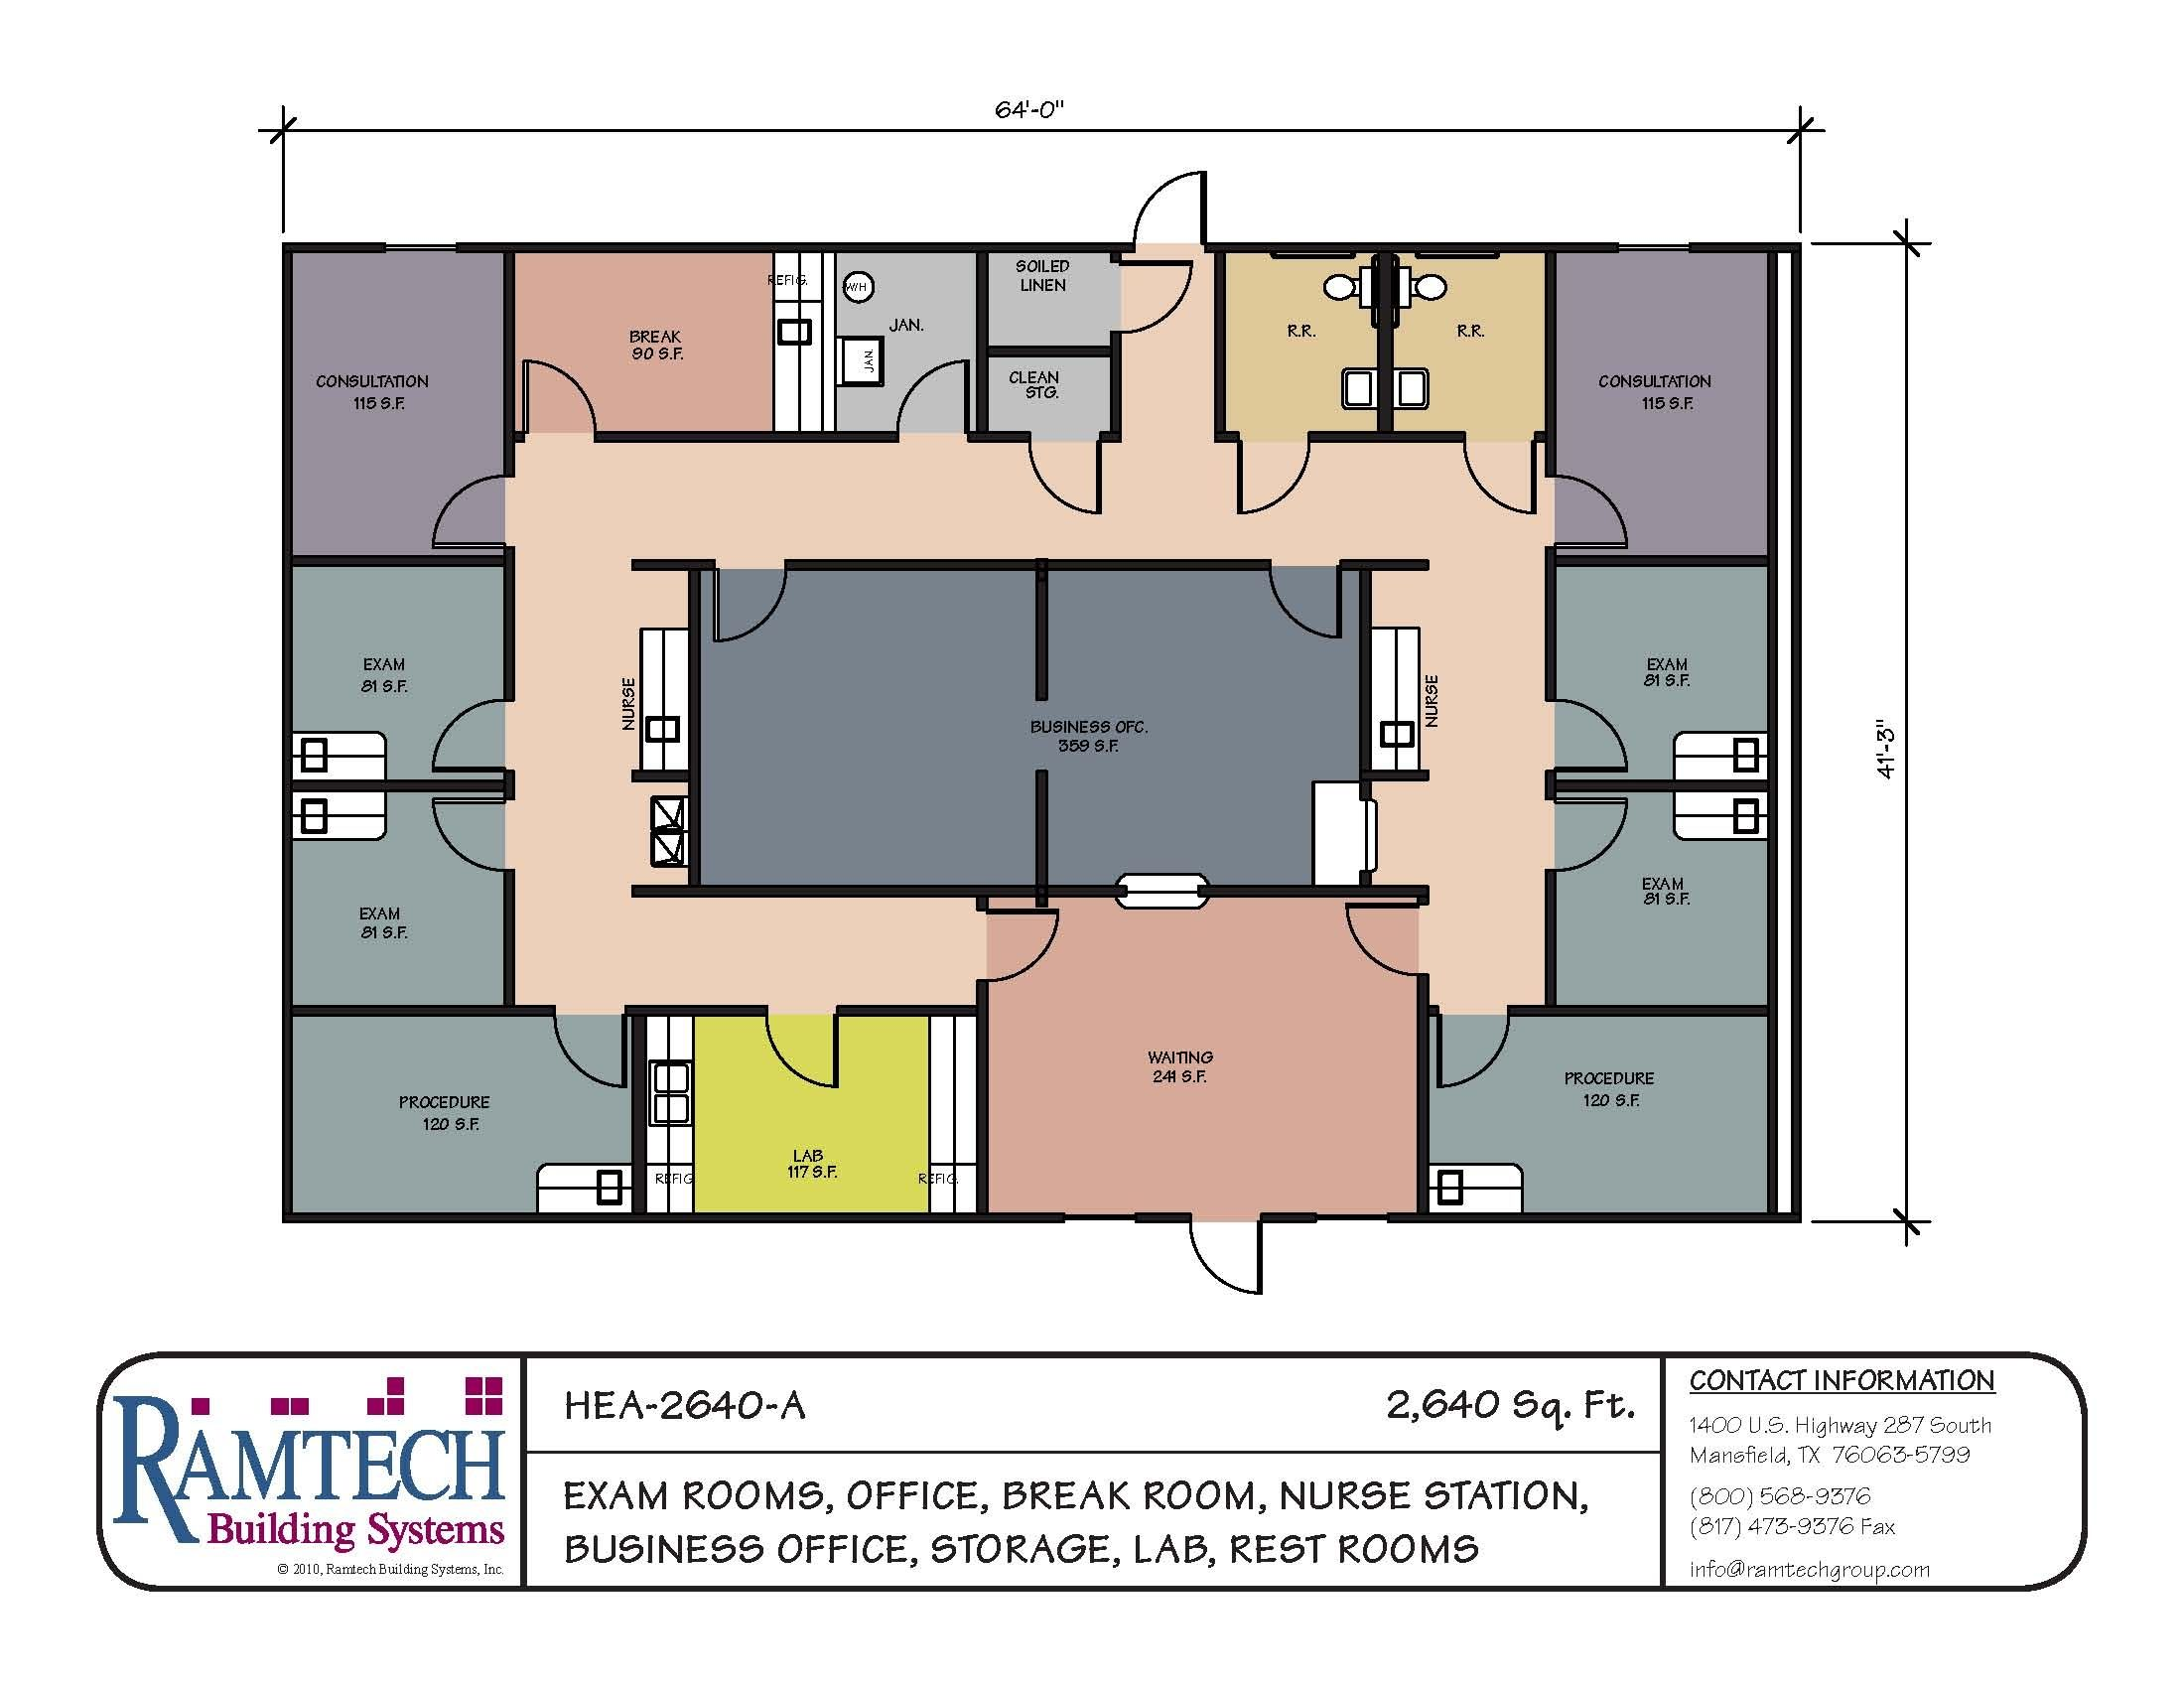 Small Medical Office Floor Plans Patterns Of A Real Estate Property Could Be Transformed Into 3d Or Interac Office Floor Plan Hospital Floor Plan Floor Plans